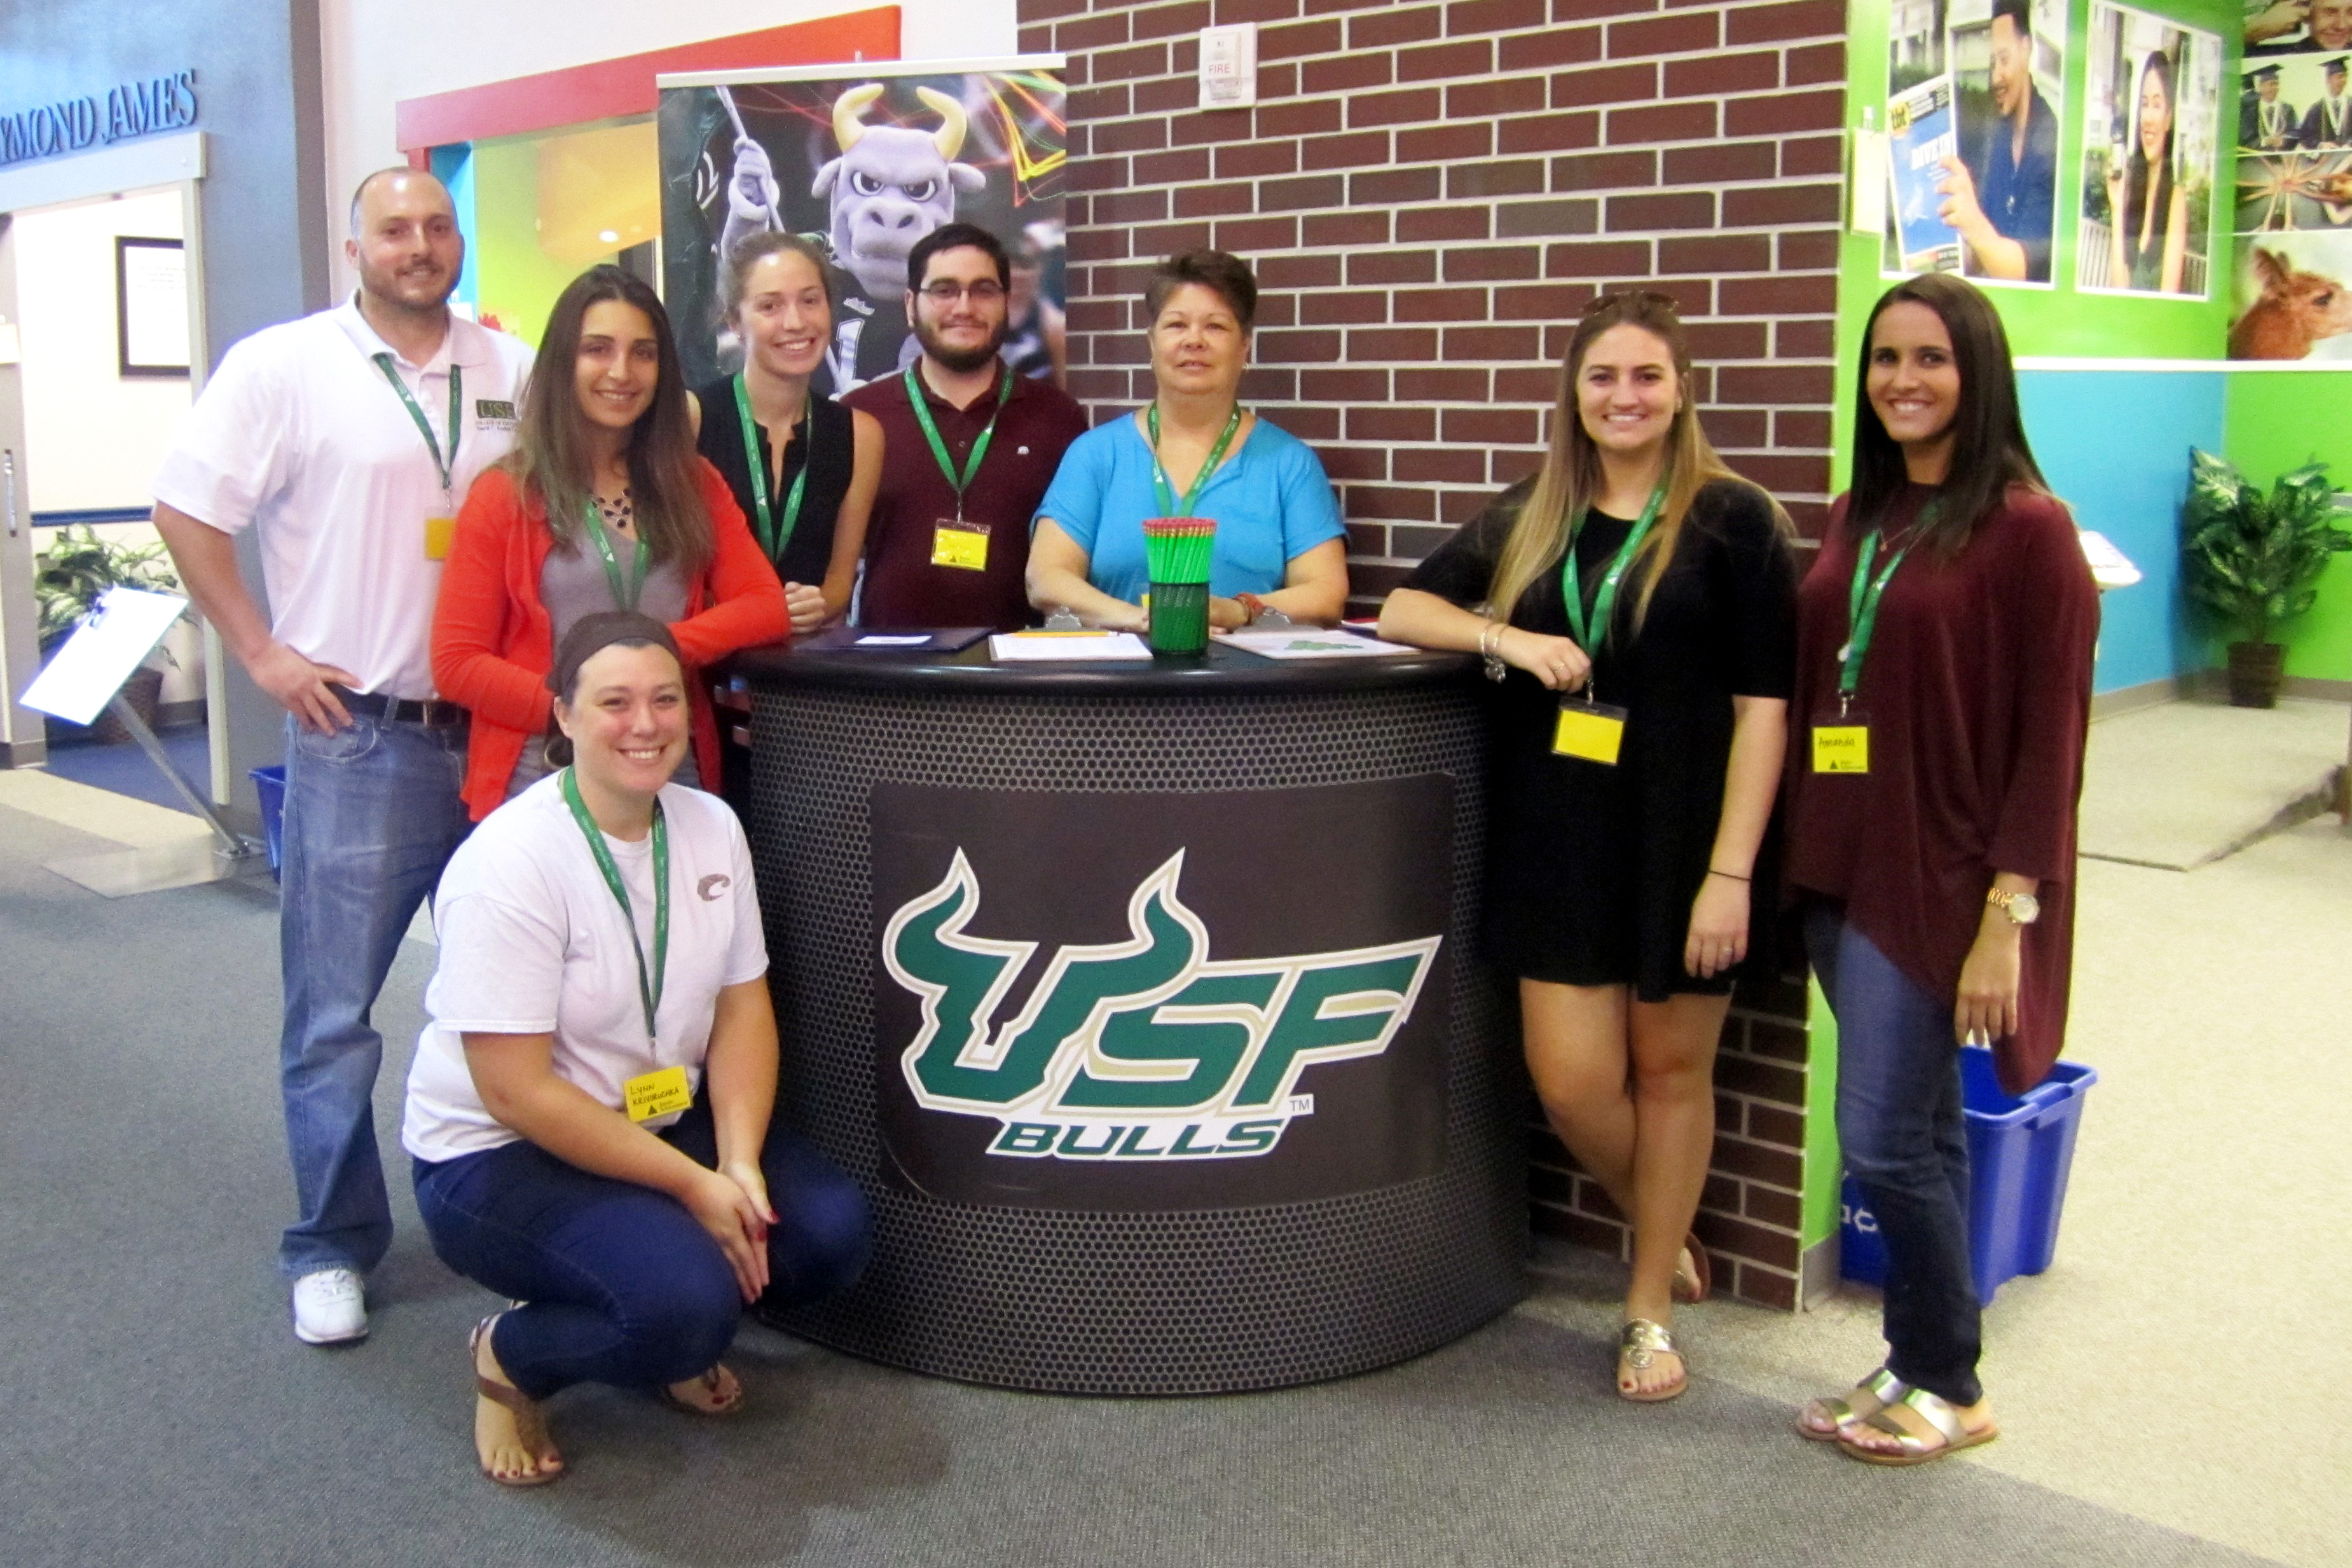 Students in the USF College of Education Master of Arts in Teaching Program at Junior Achievement BizTown